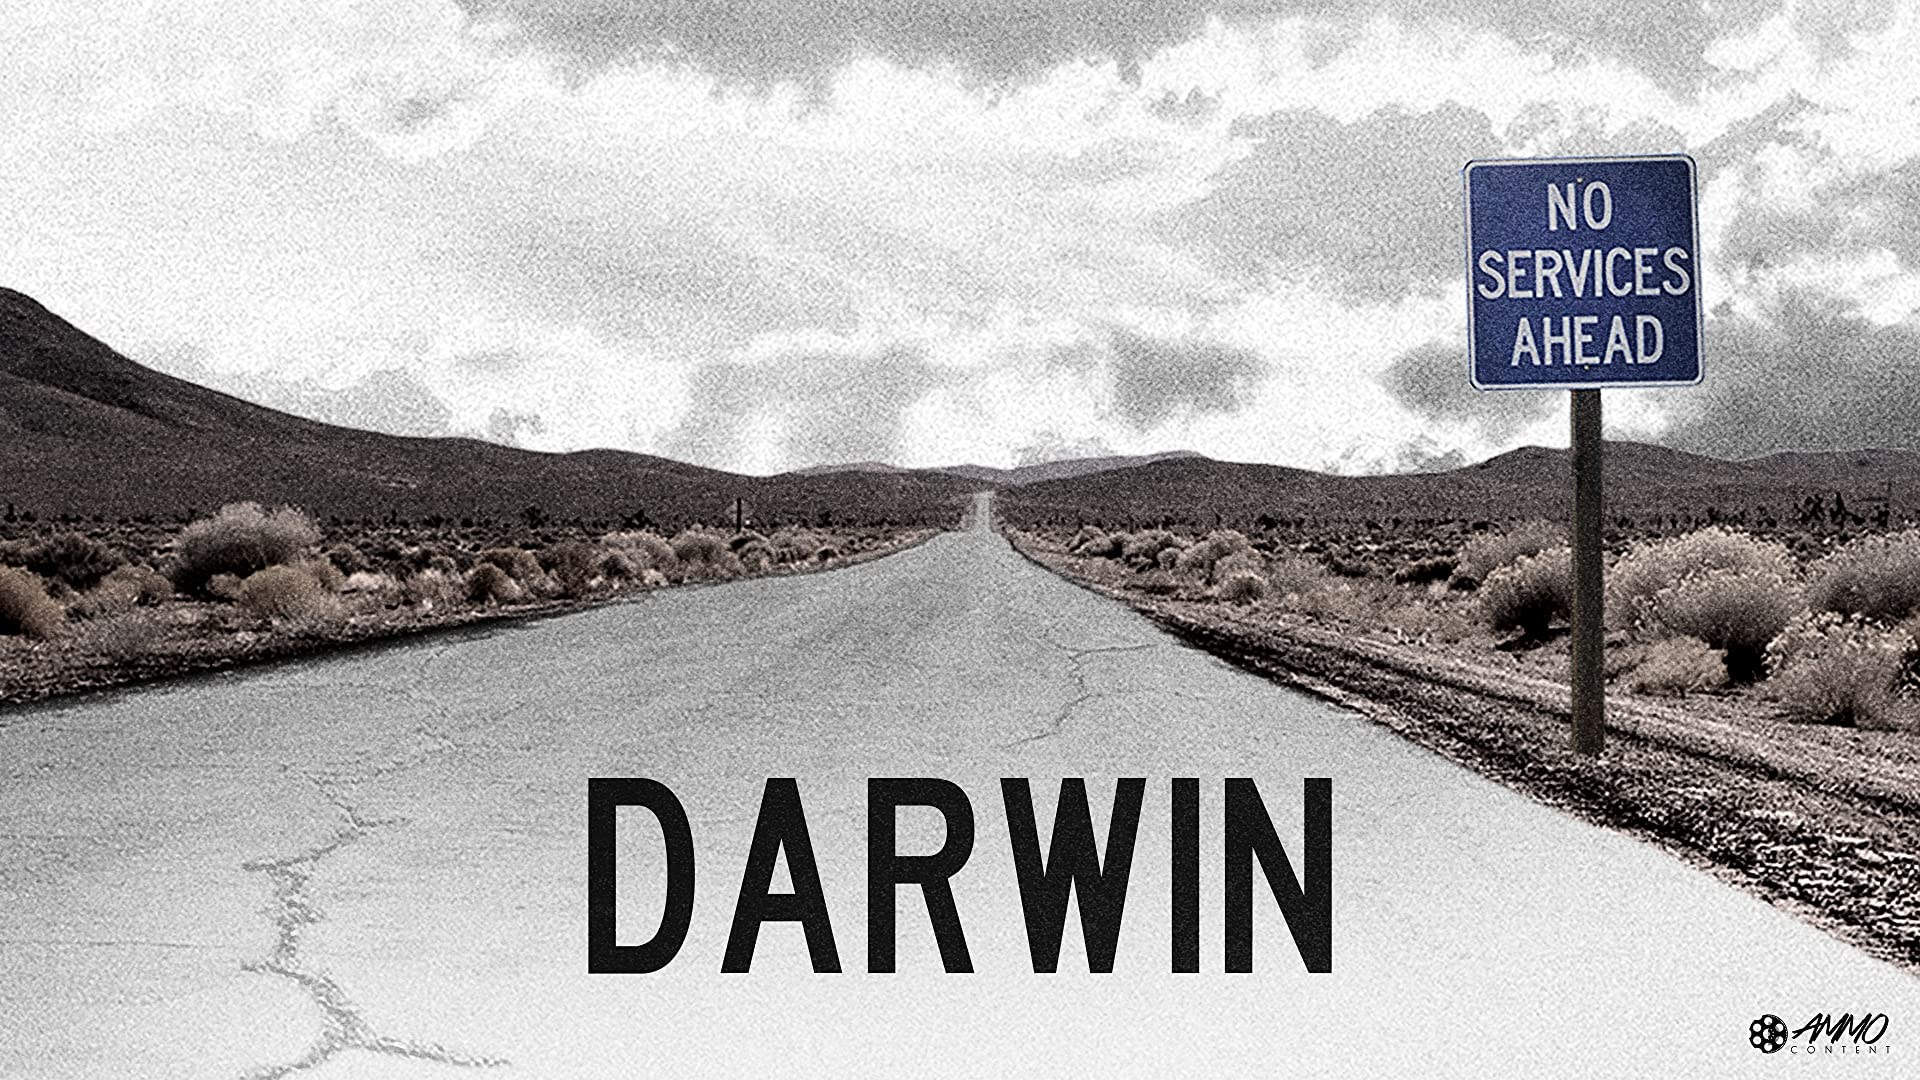 Darwin: No Services Ahead